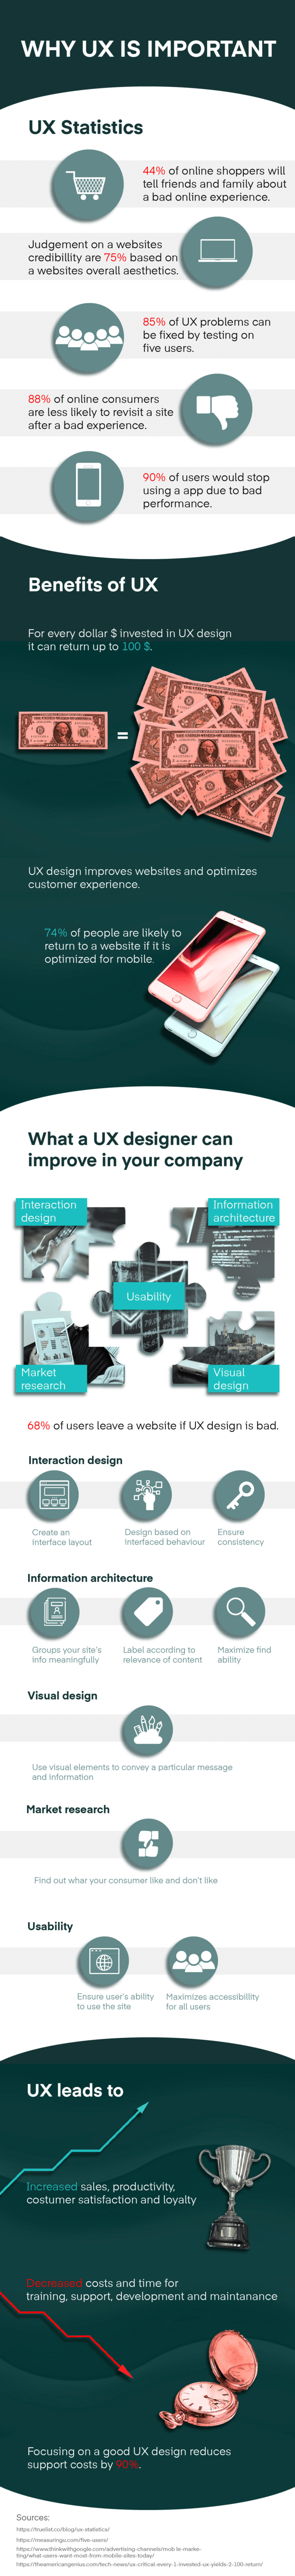 This why UX is important infographic